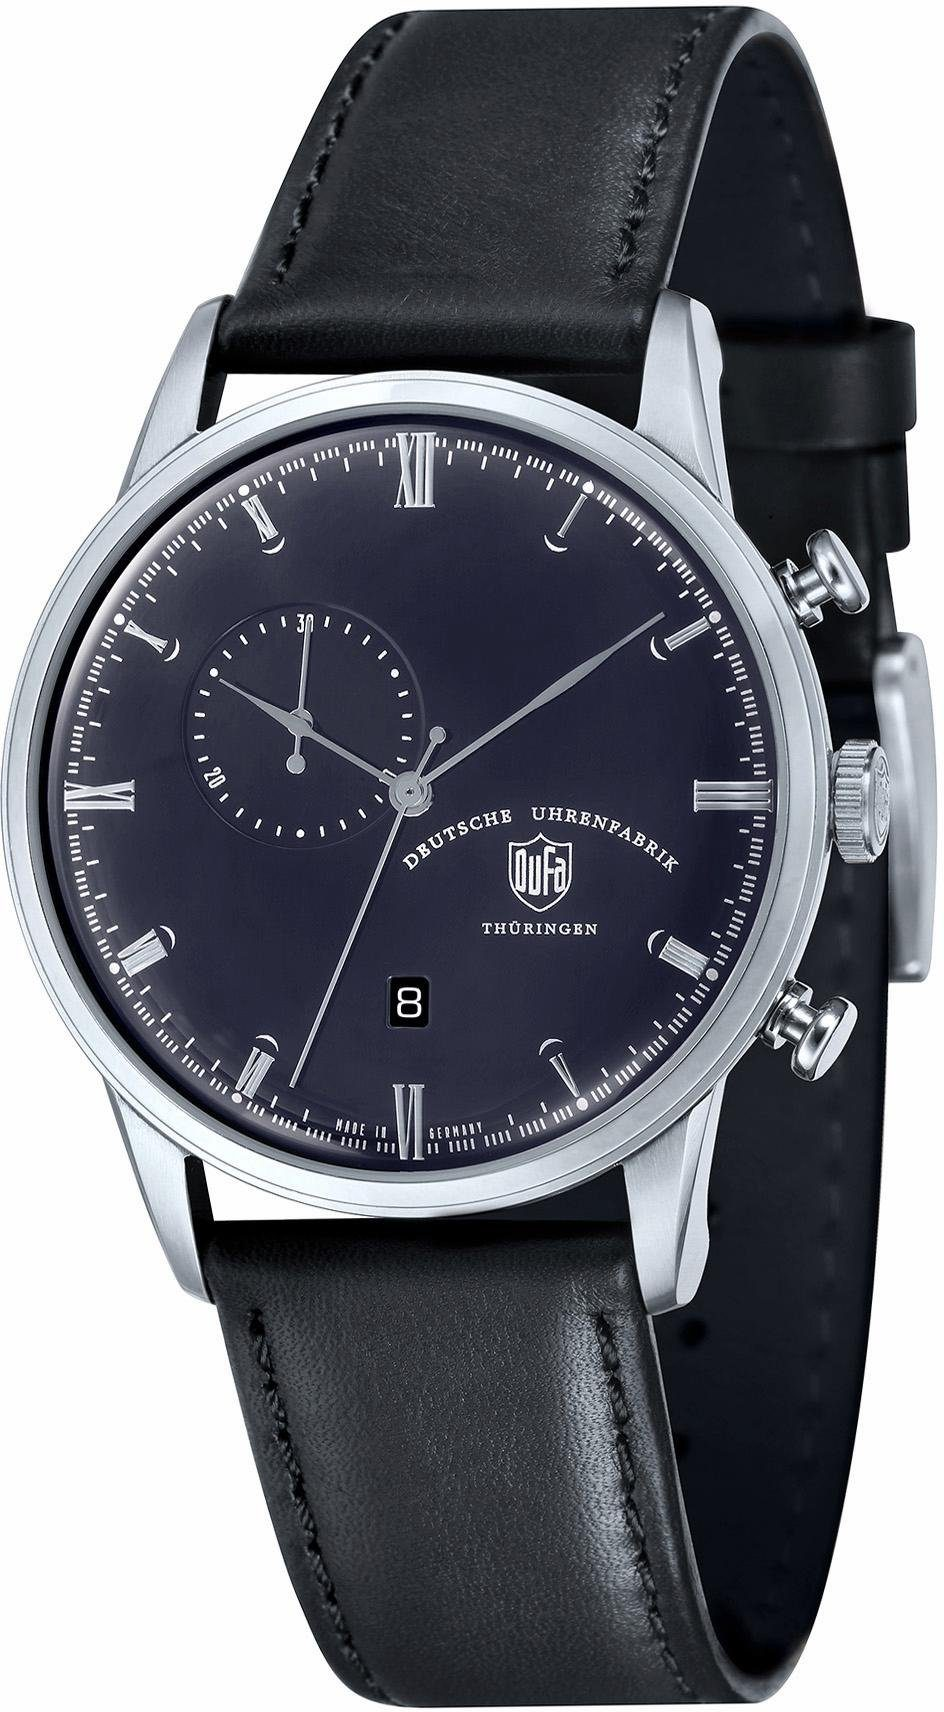 DuFa Chronograph »Weimar, DF-9007-03«, Made in Germany